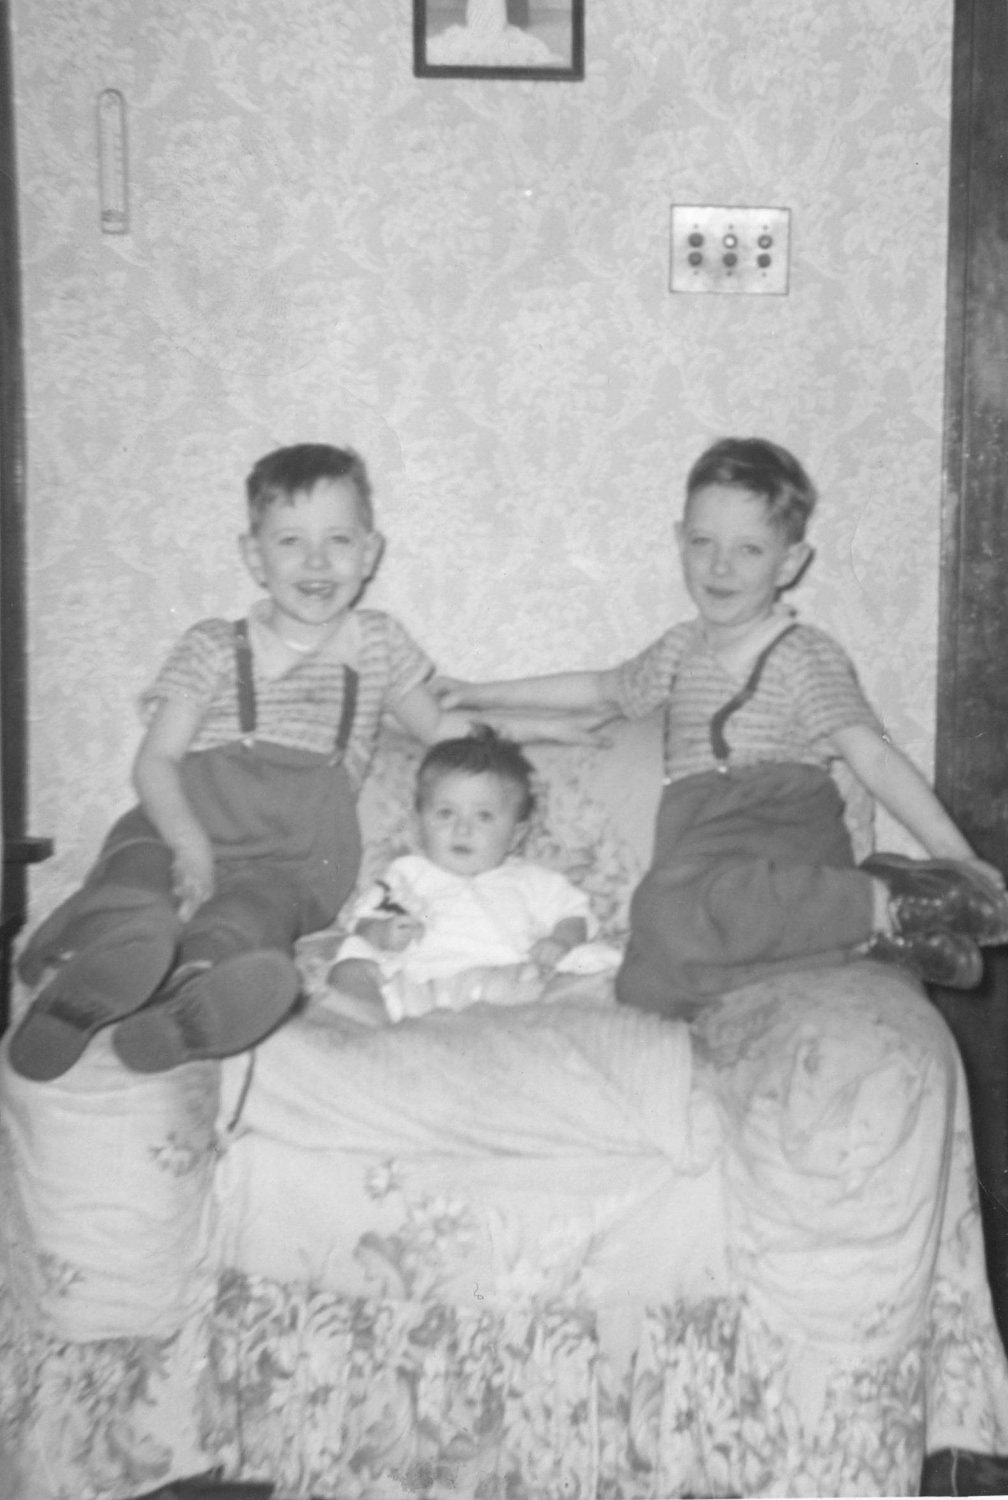 Cute Twin Boys Pose for this vintage photo with their little brother.